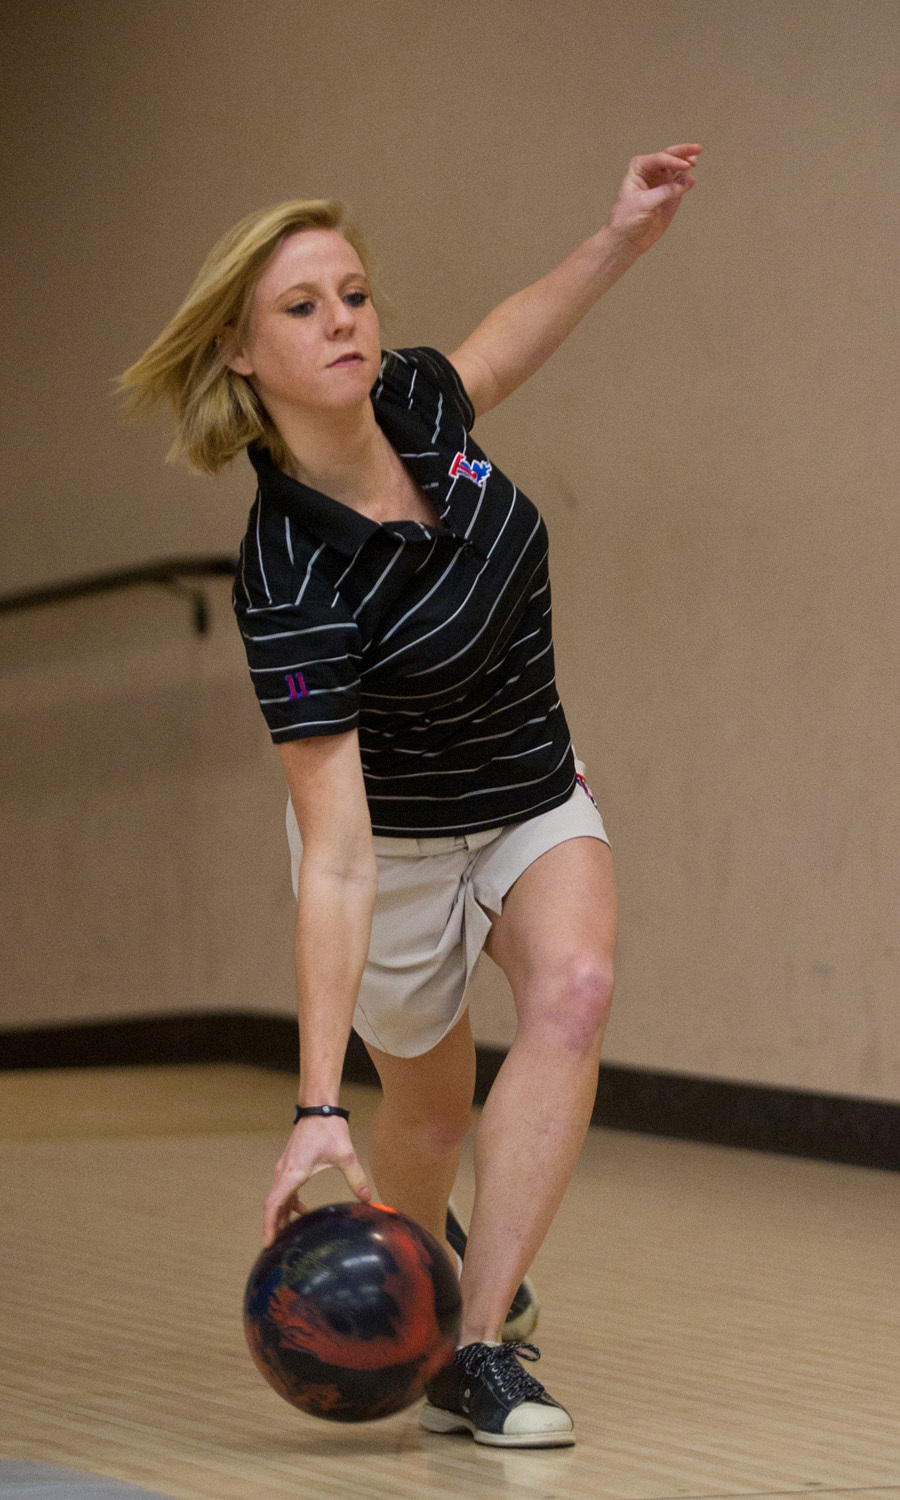 Senior Houston Granger leads the Lady Techsters with an average pinfall of 188.0